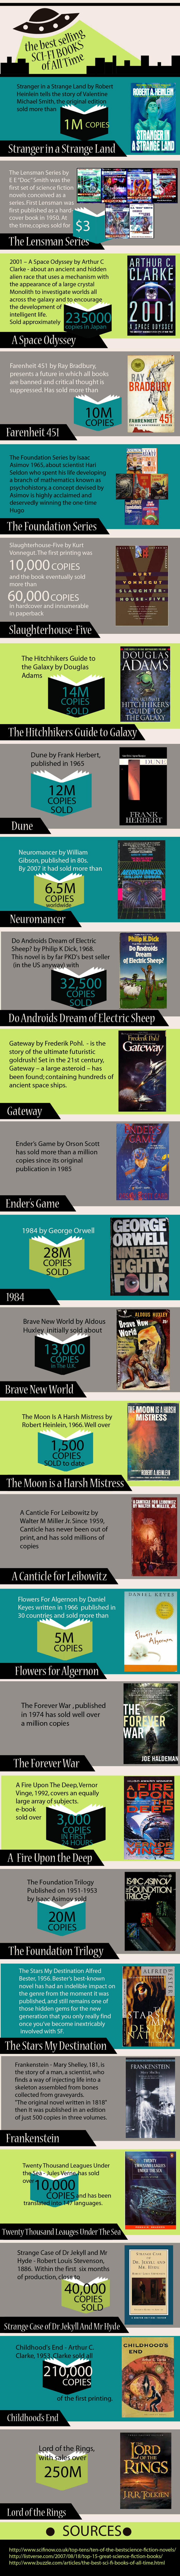 Best selling science fiction novels of all time